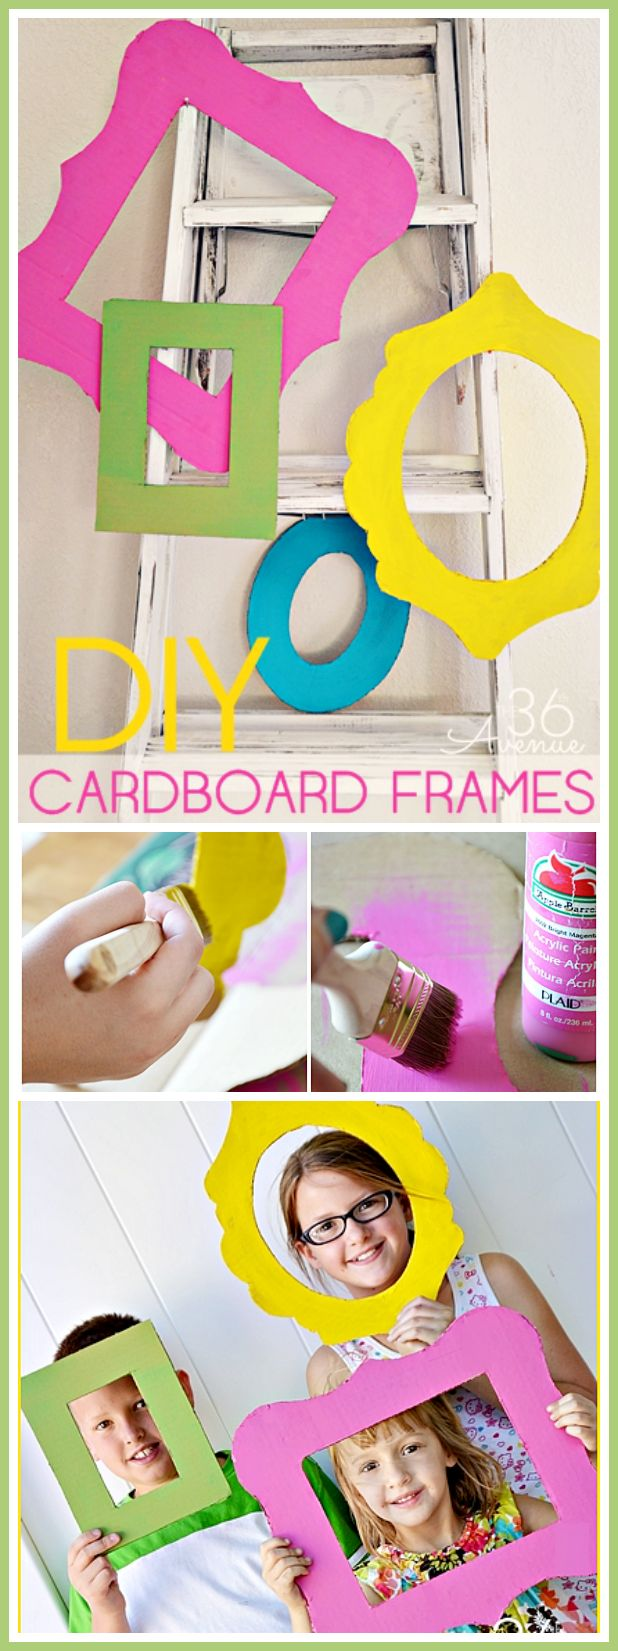 Super cute DIY Cardboard Frames. Perfect for photo props and parties! #diy #crafts